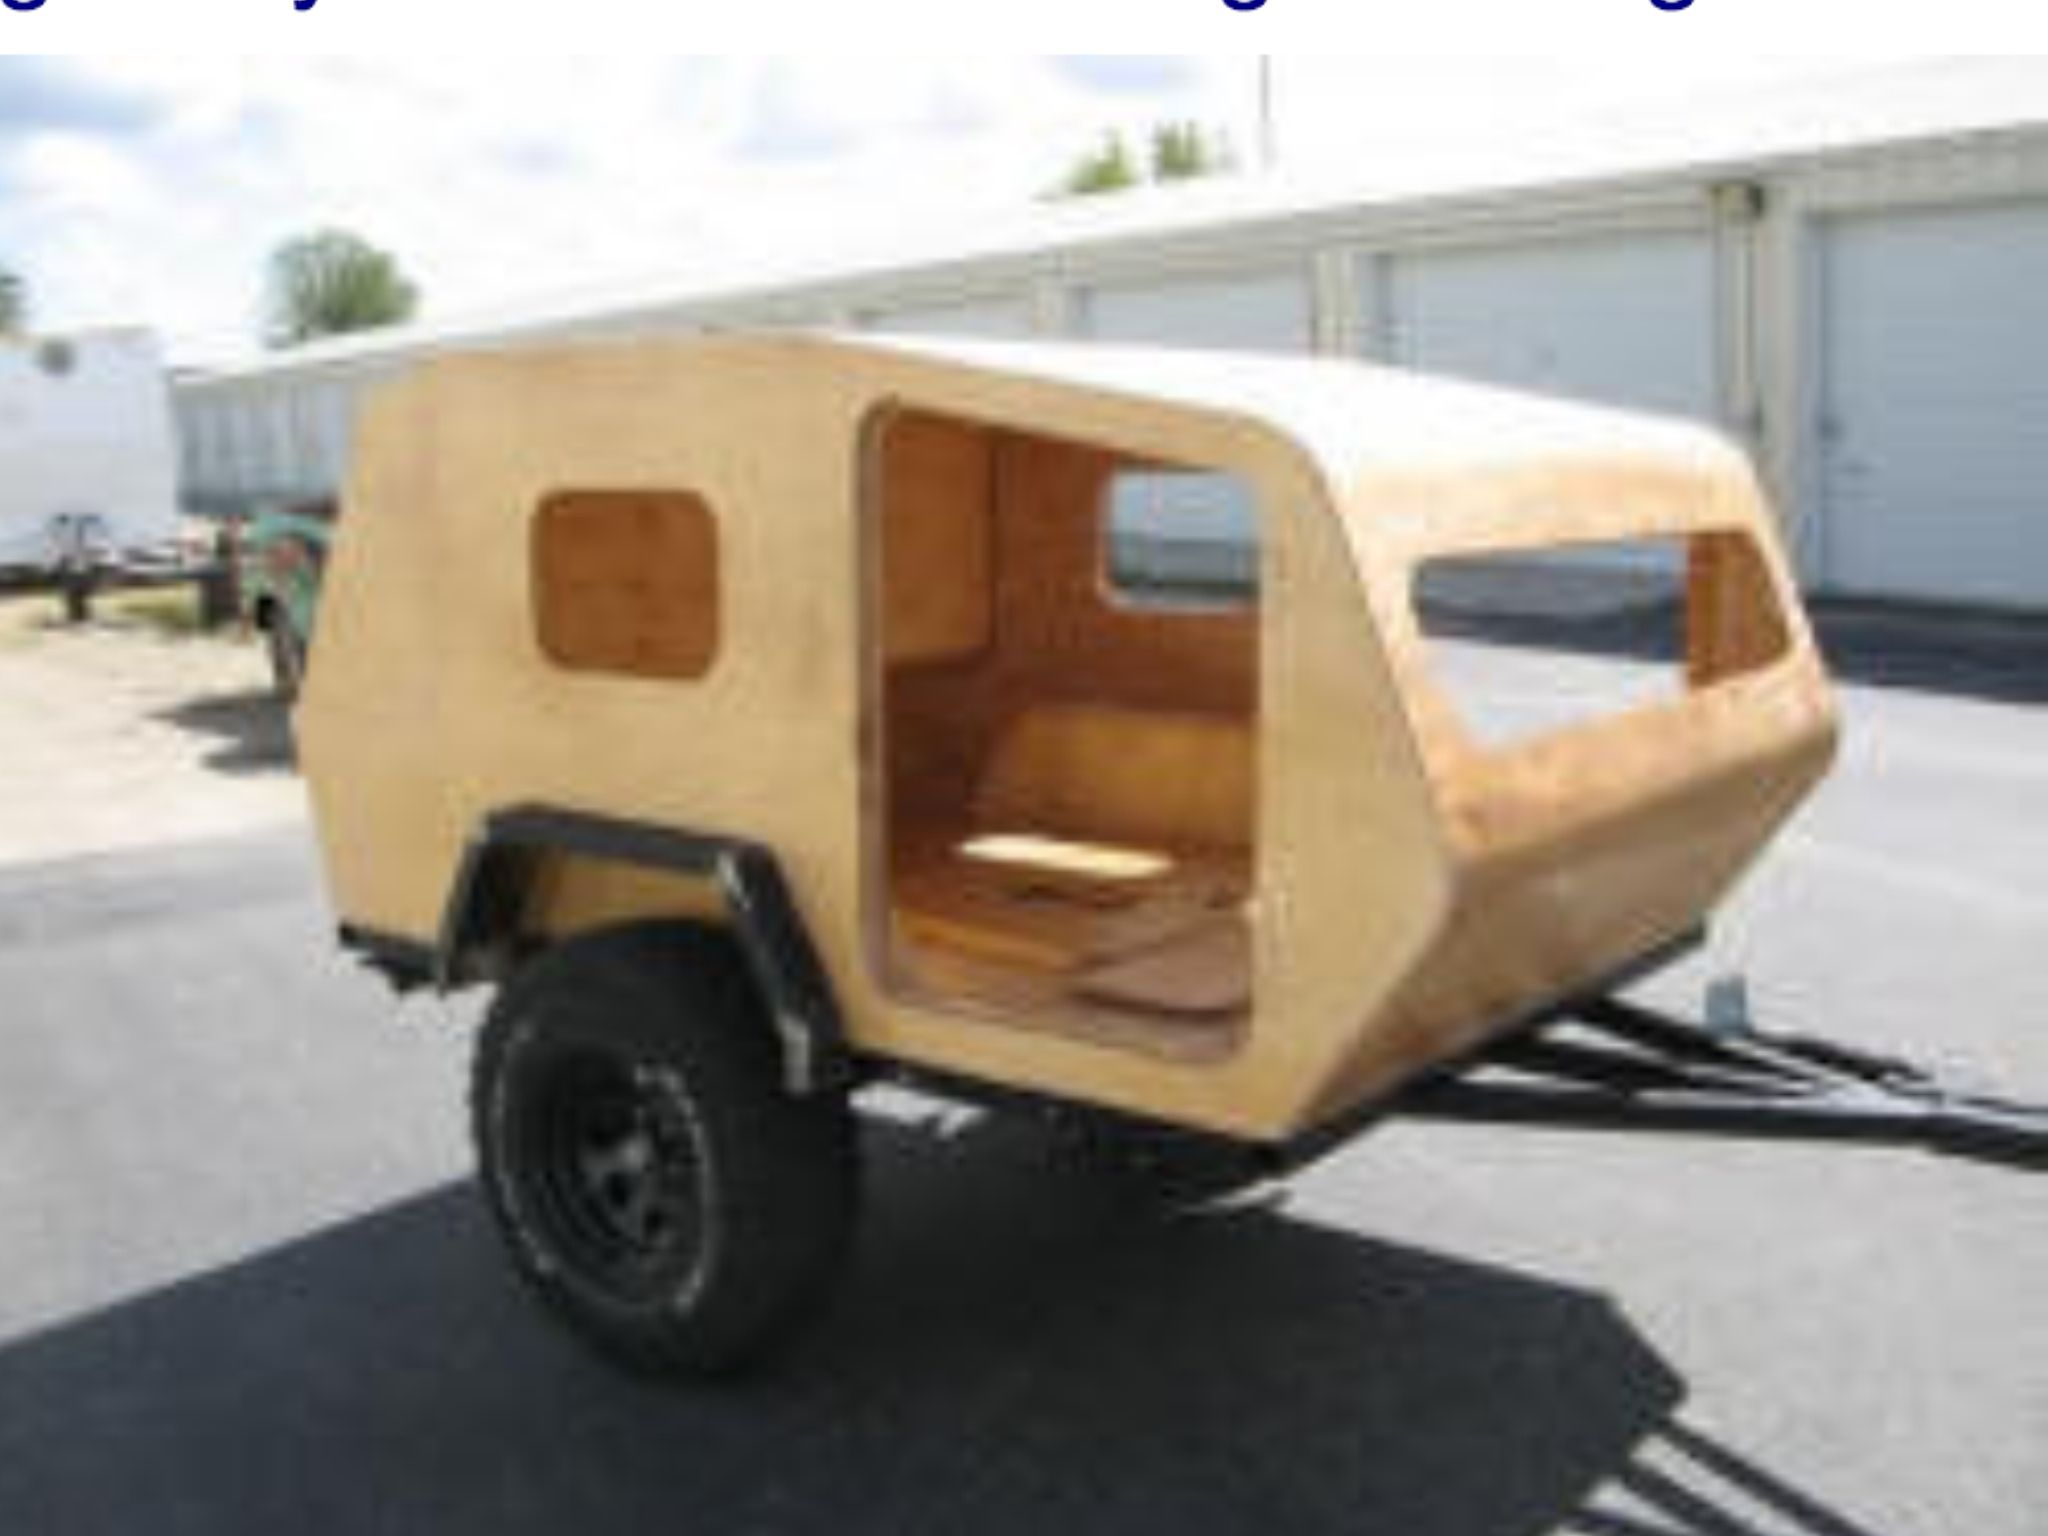 Homemade Off Road Camper Trailer Plans - Year of Clean Water